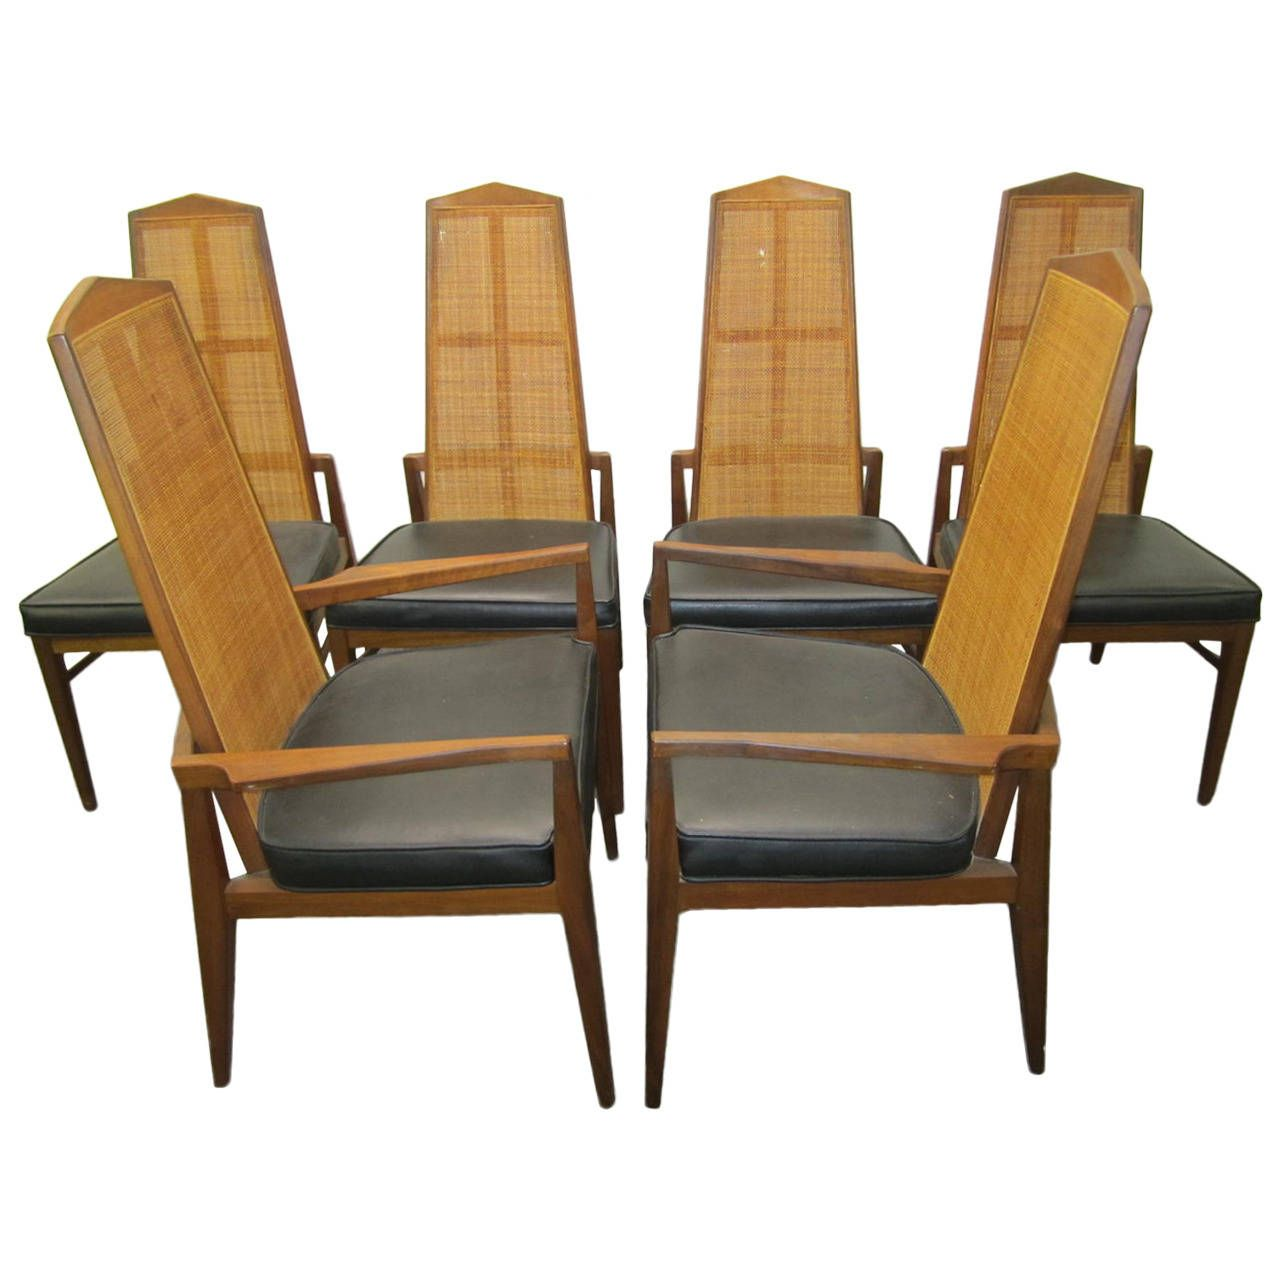 Six Walnut Foster And McDavid Cane Back Dining Chairs Mid Century Modern